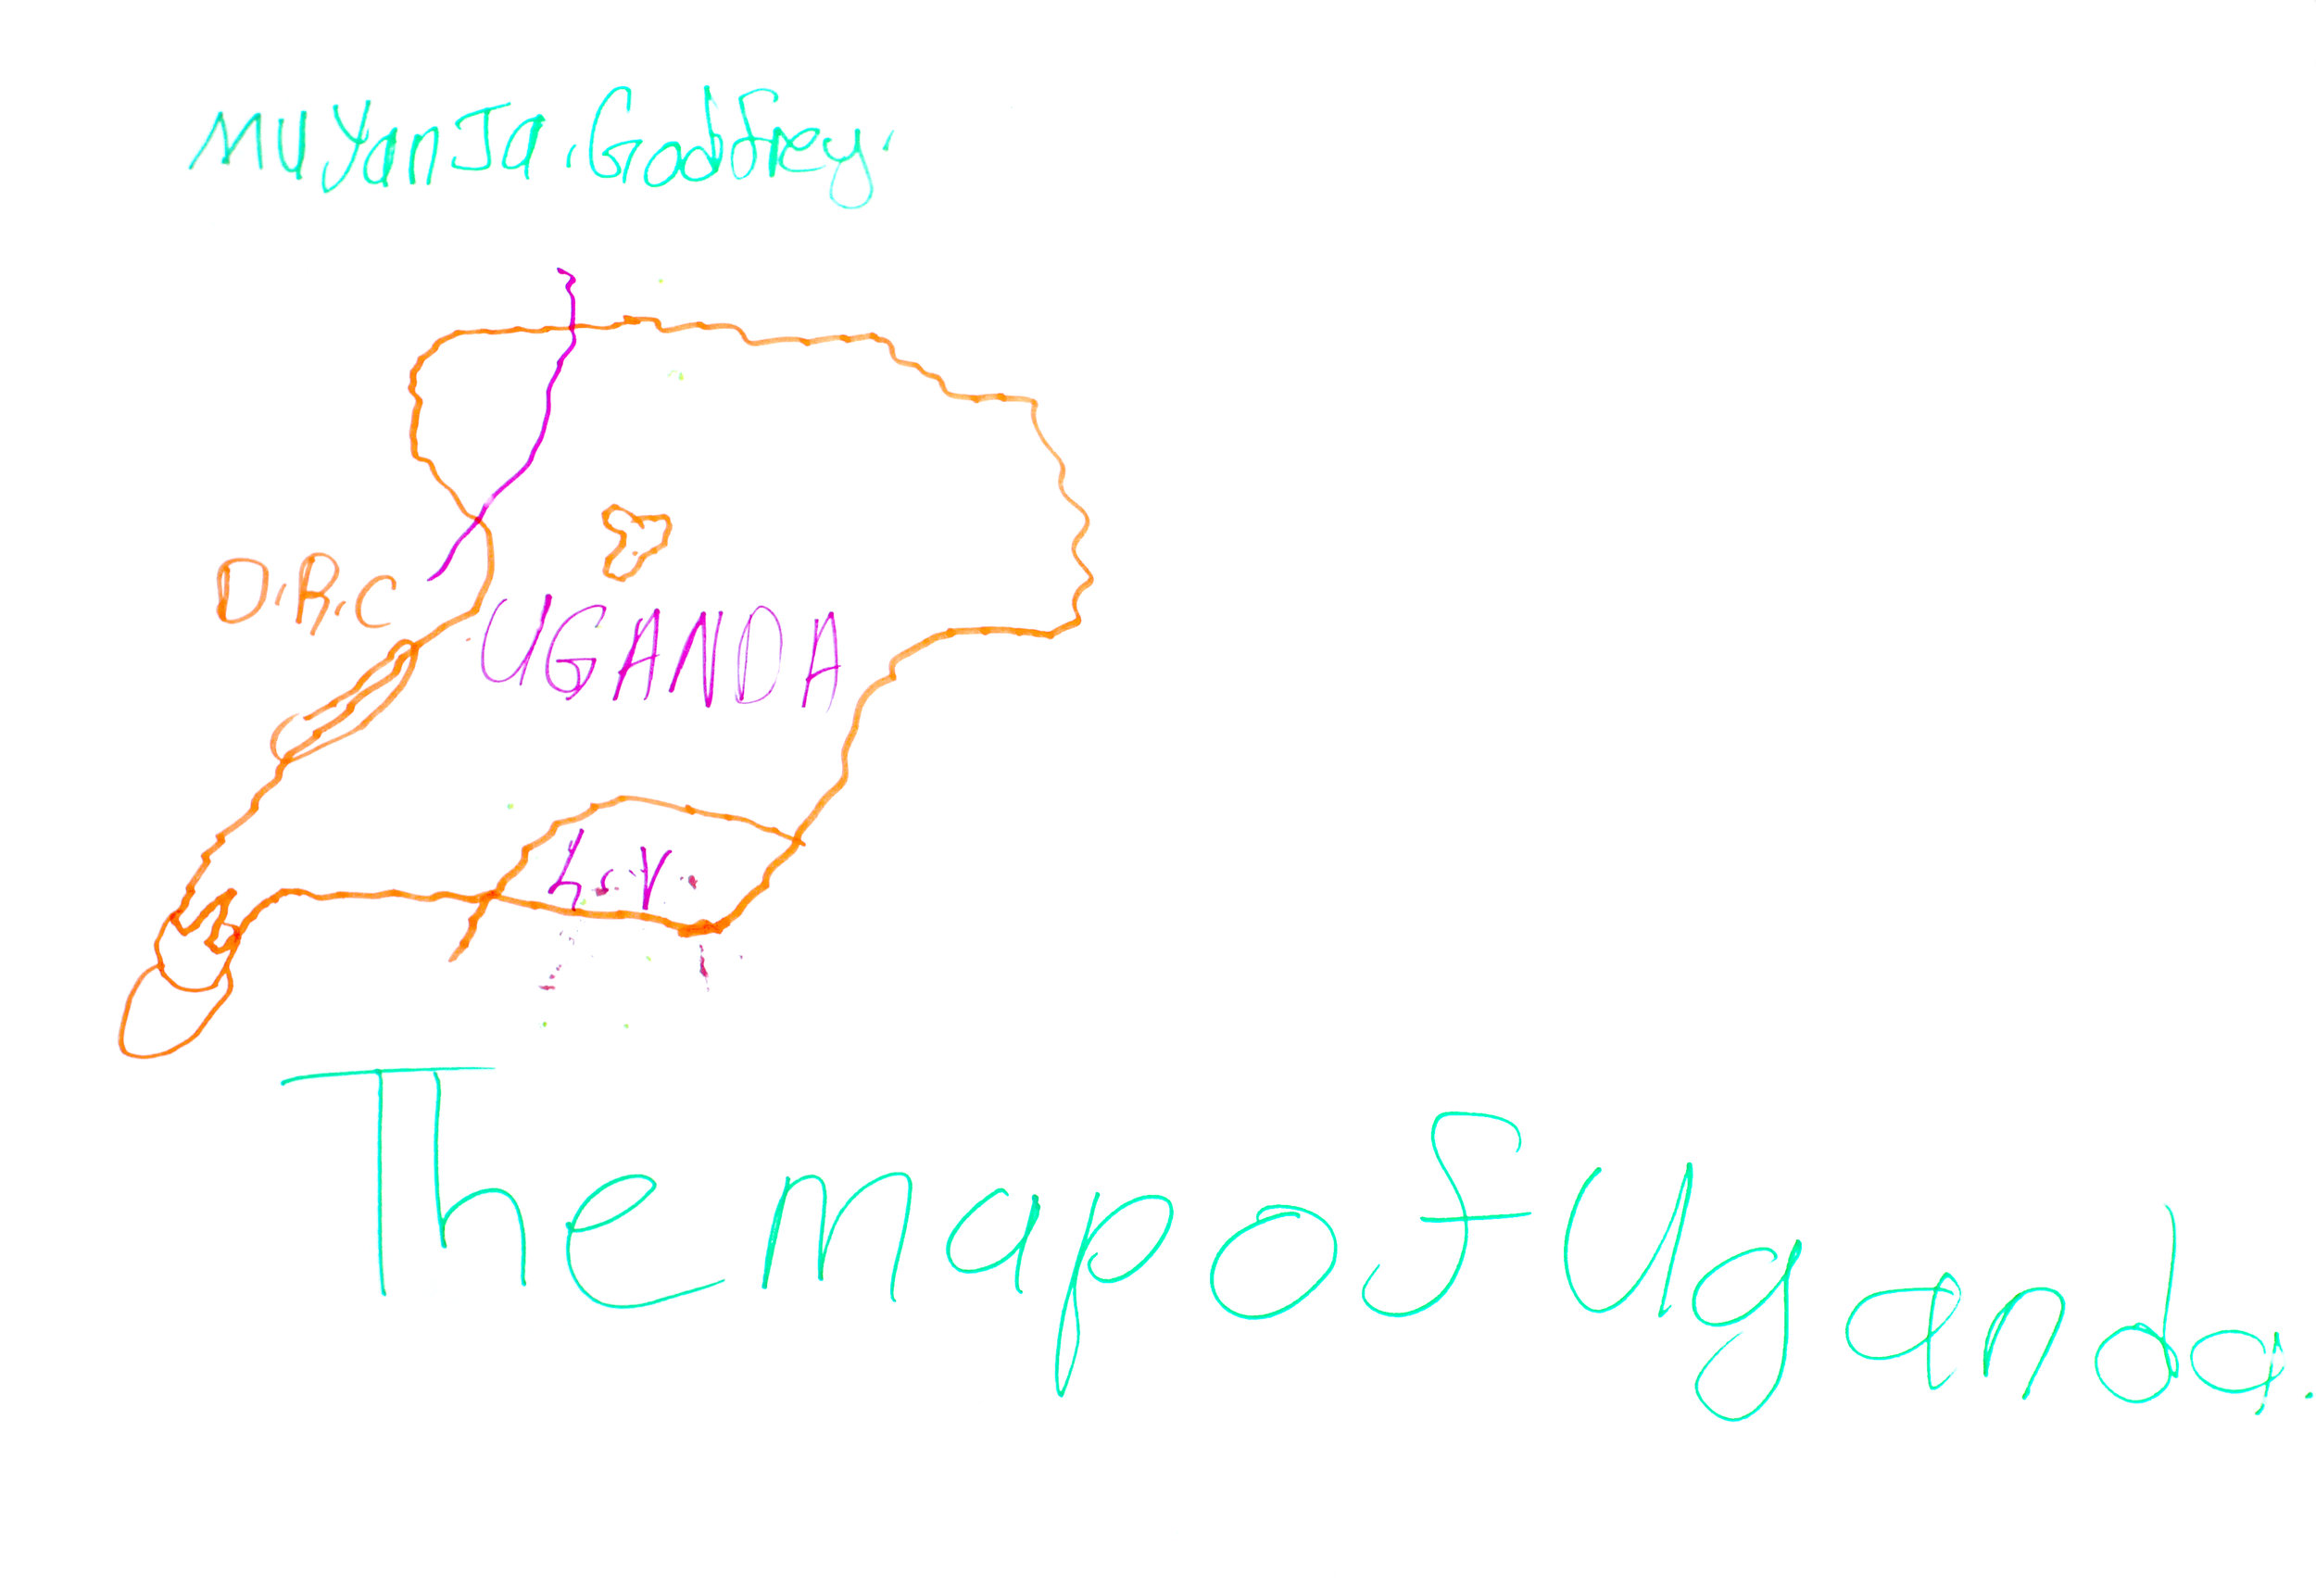 map of uganda by godfrey awamu.co.uk